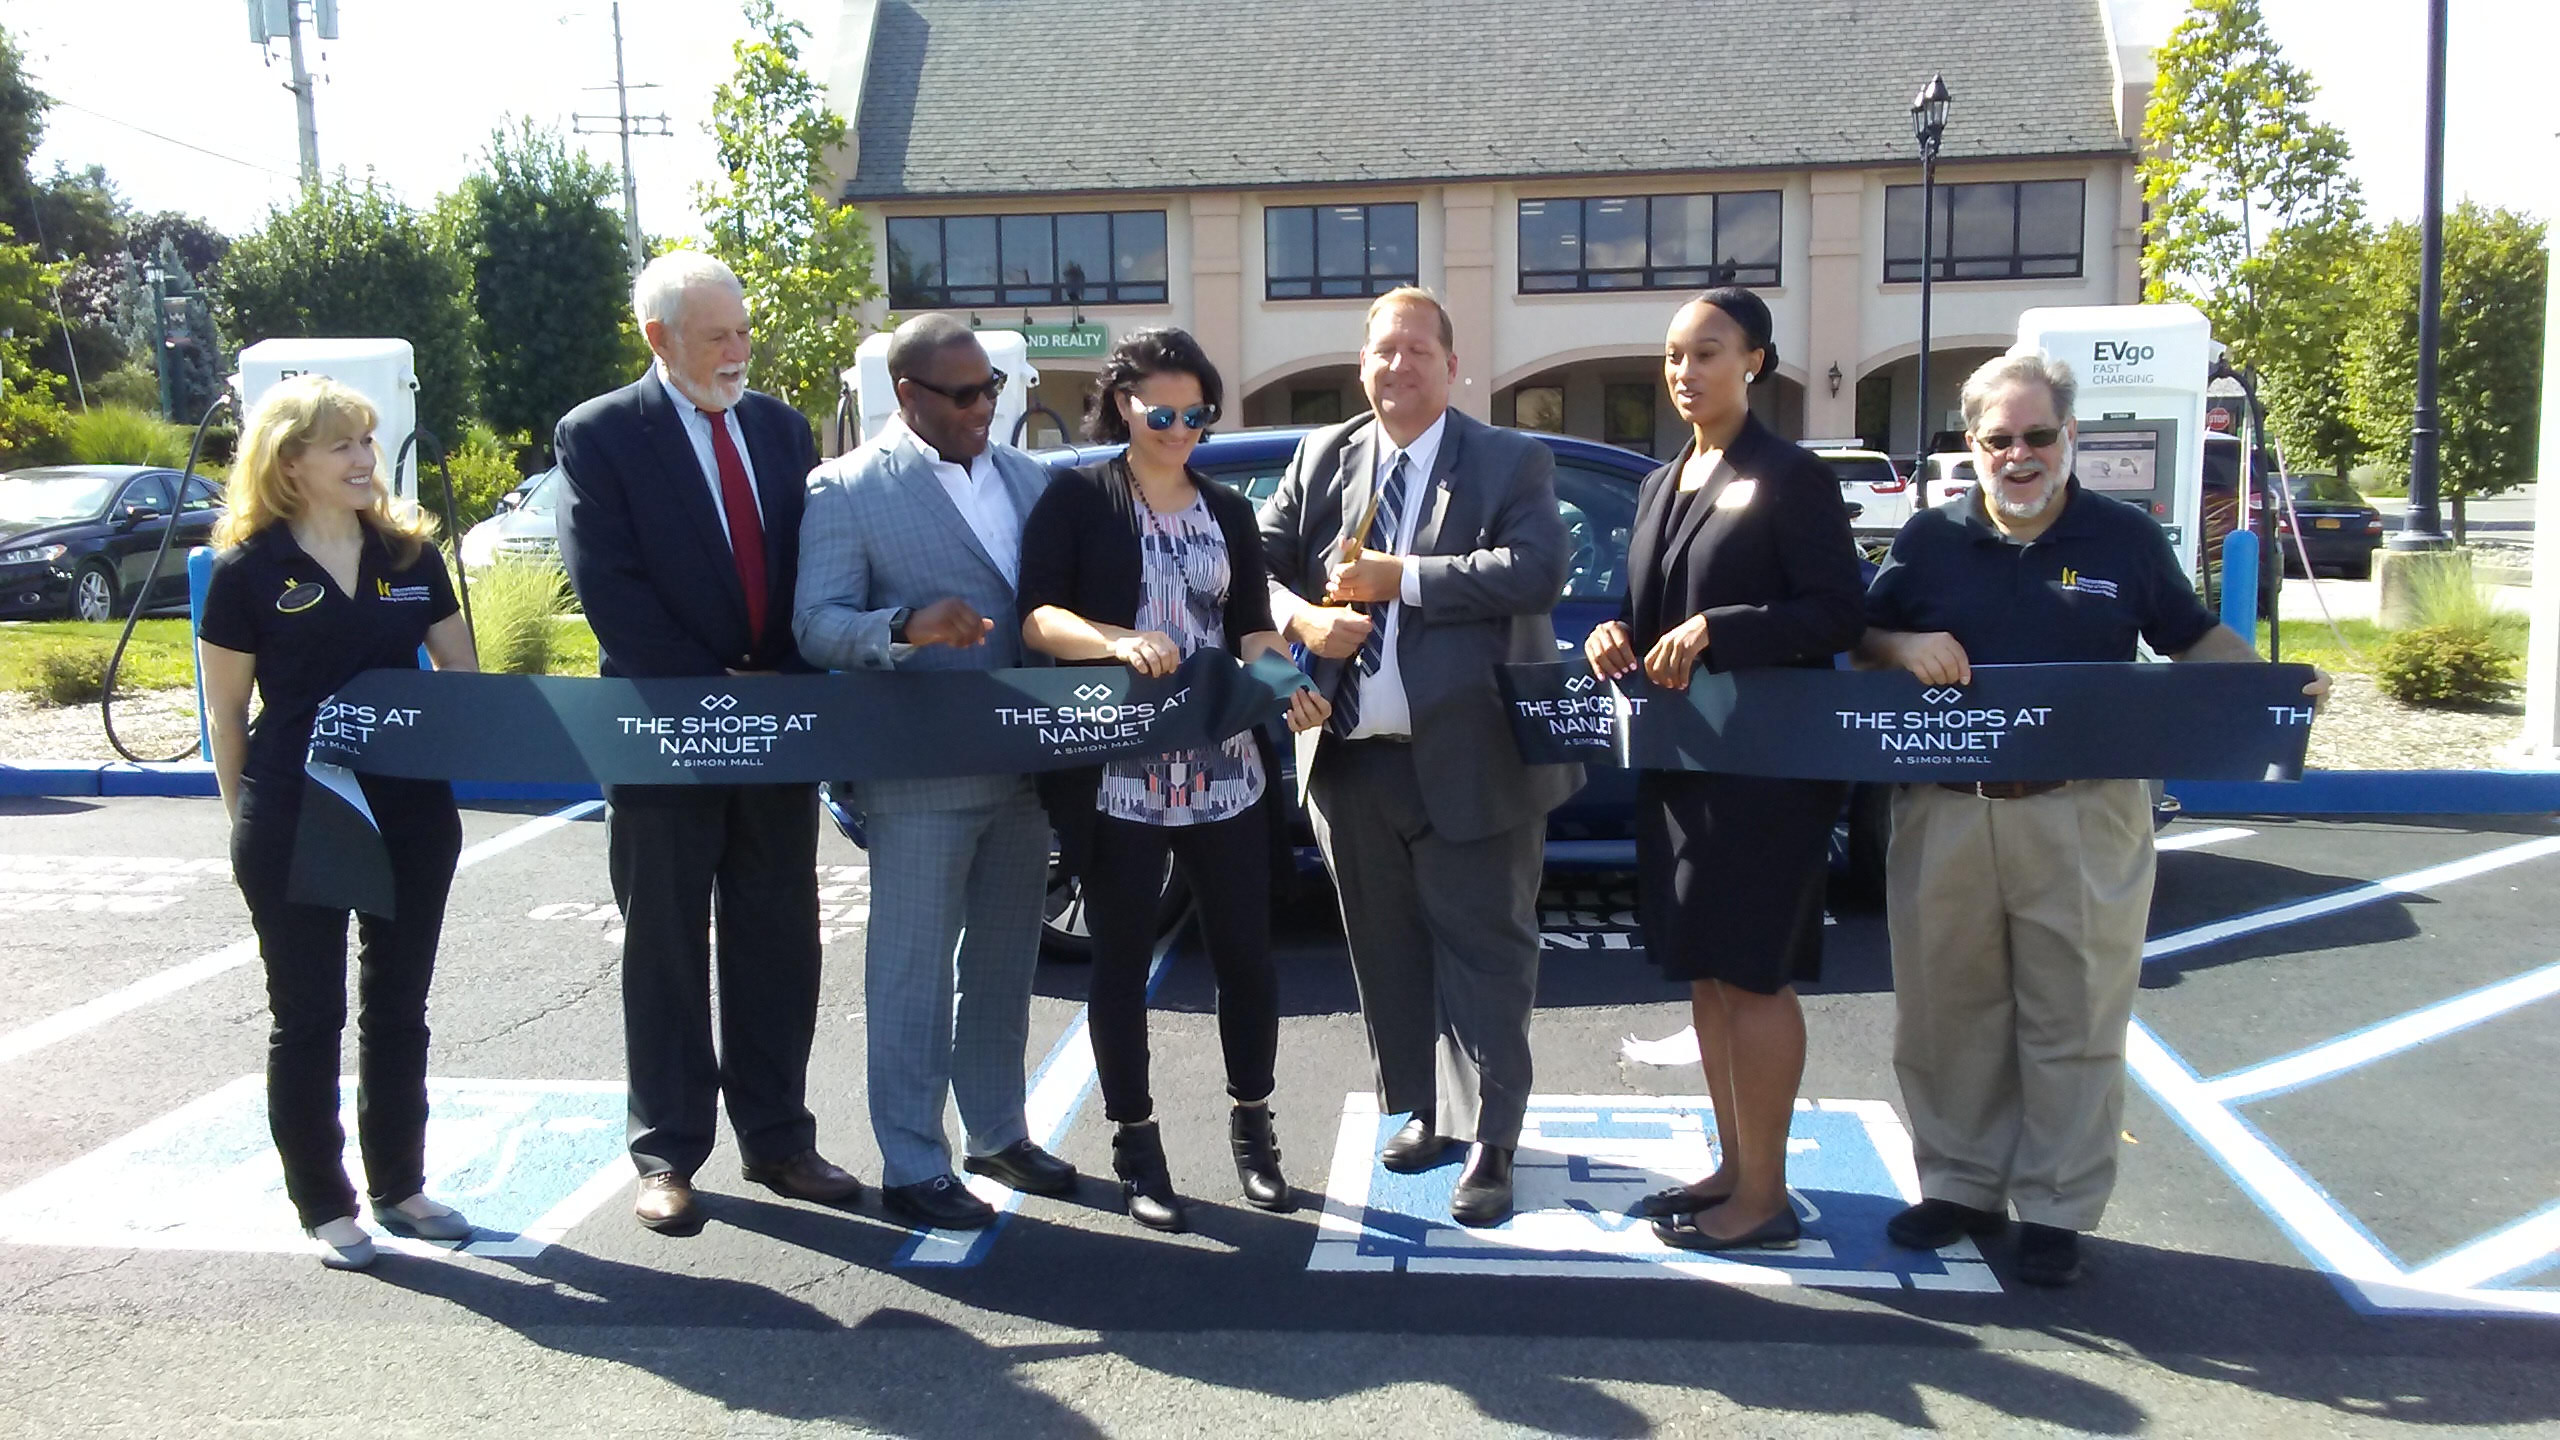 EVgo electronic charging station opens in Nanuet | The